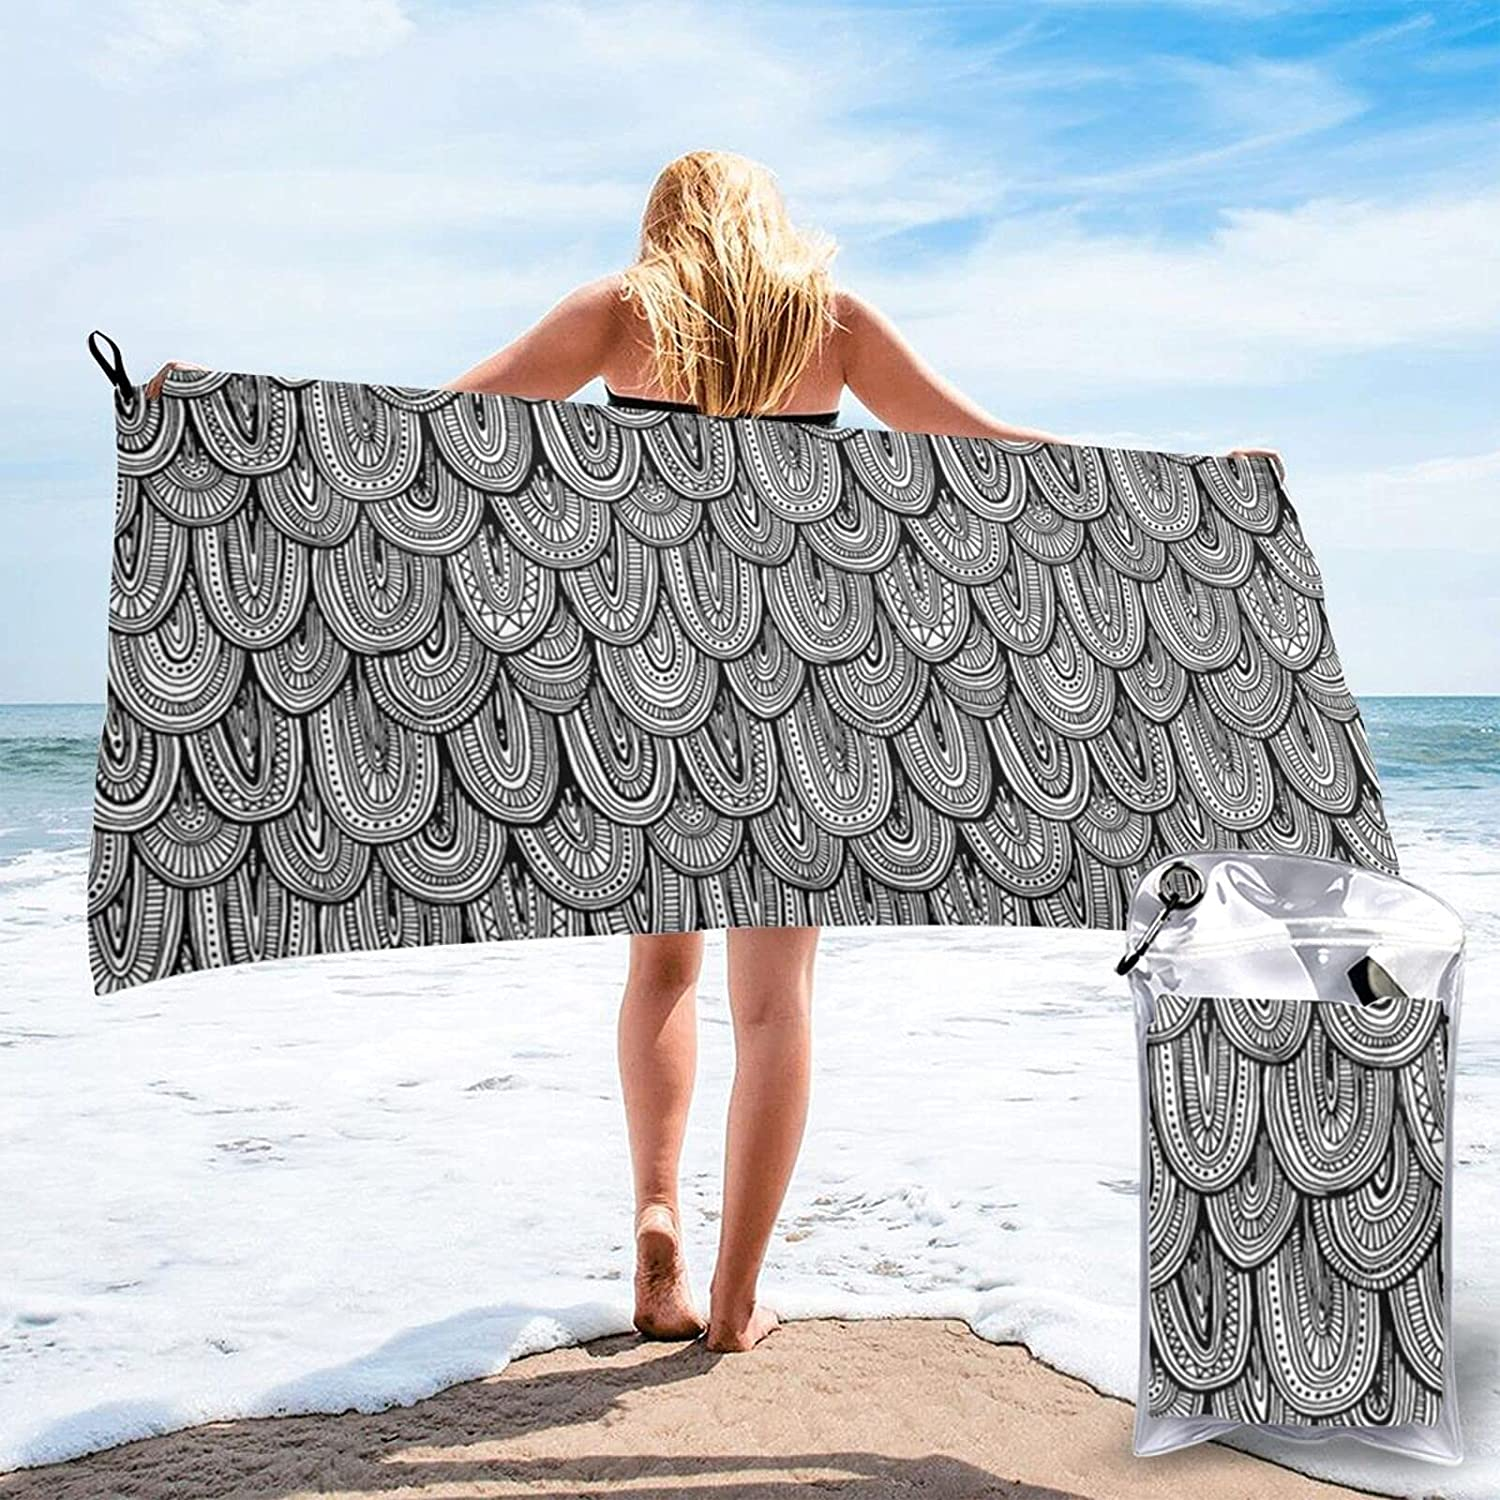 N\\A Doodle Scales Black Product White Beach Adult Microfiber Max 73% OFF Larg Towel